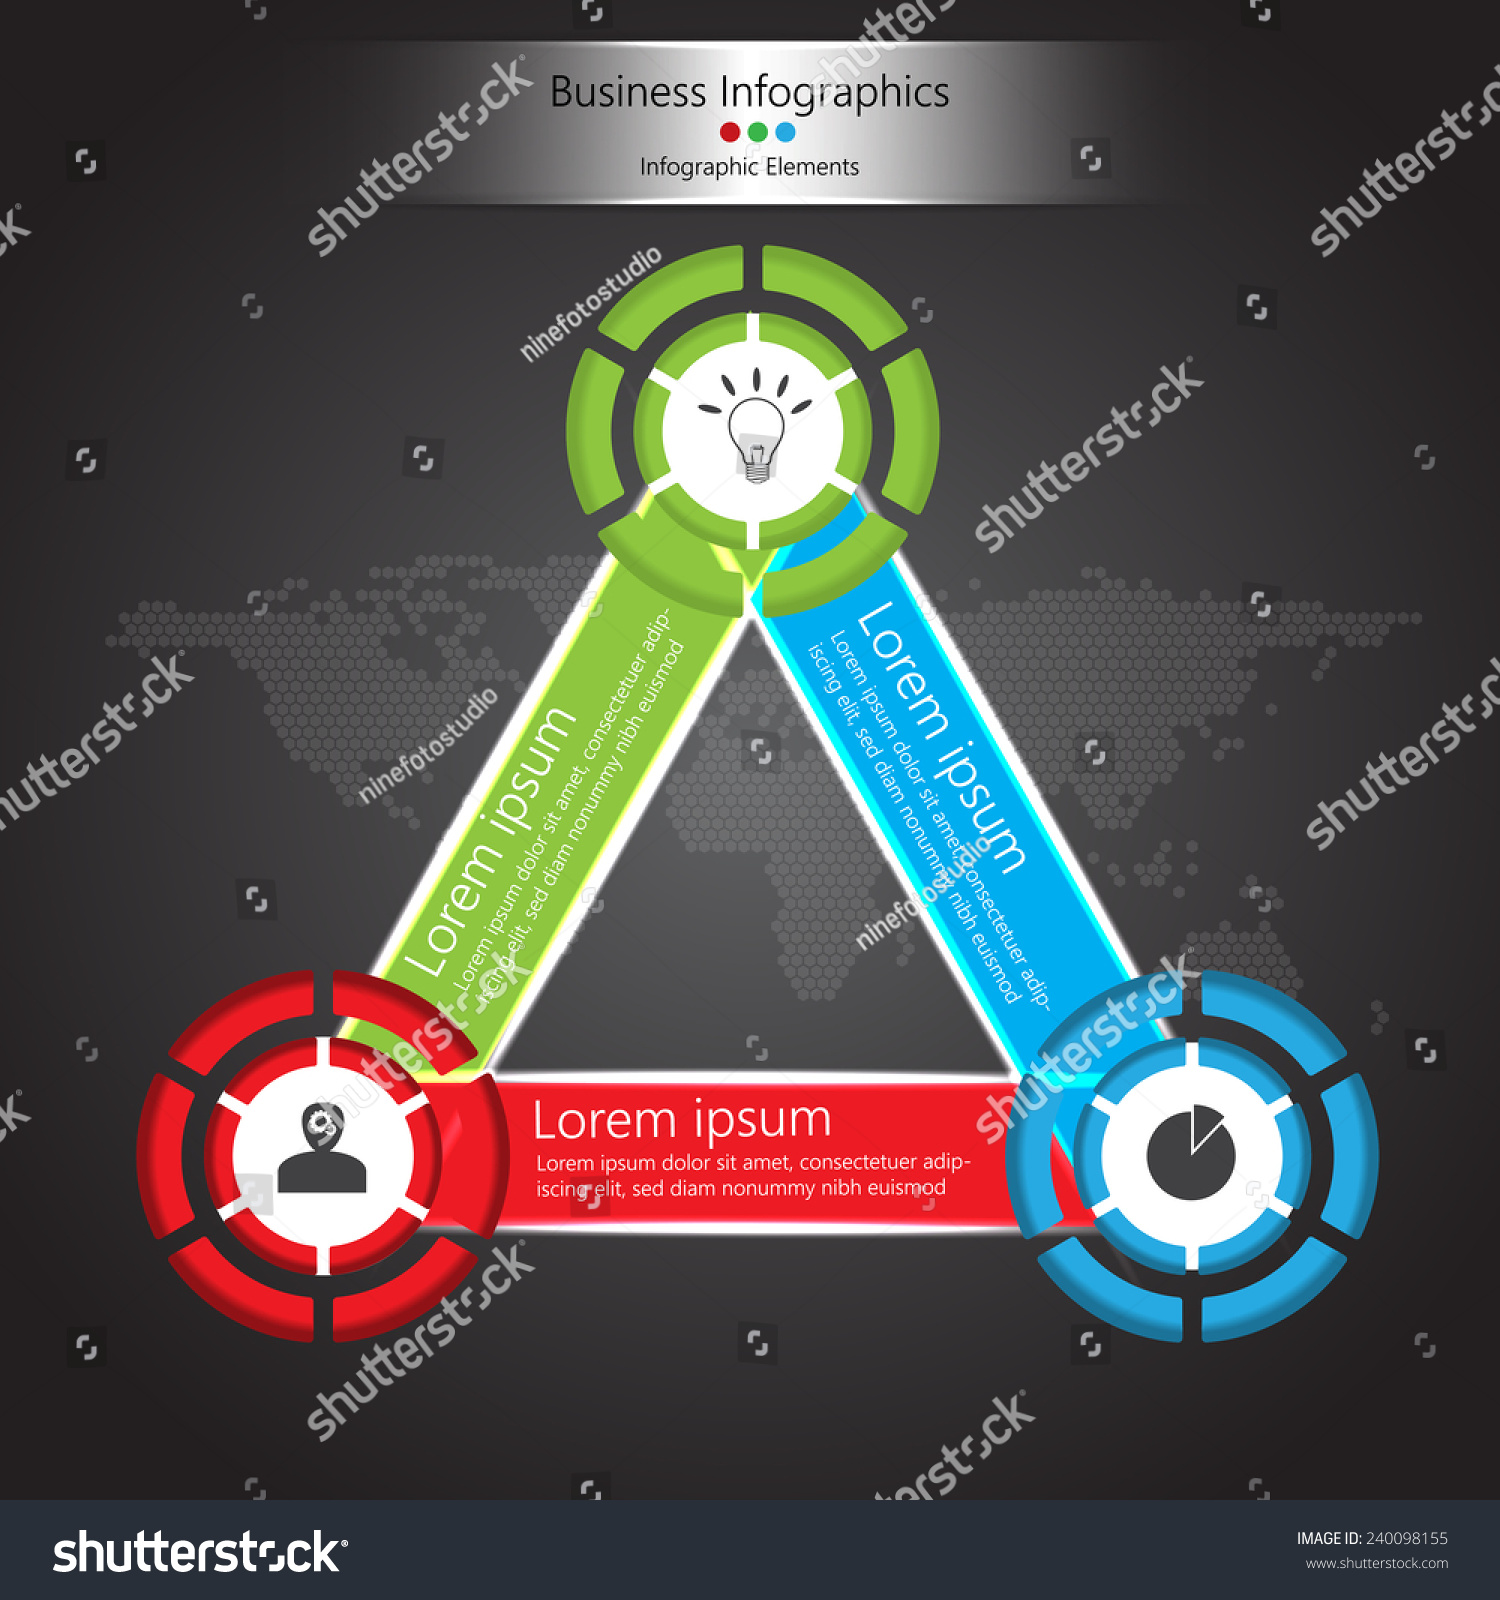 Color triangle wheel shapes design business stock vector 240098155 color triangle and wheel shapes design with business icon and text information label design abstract gumiabroncs Gallery